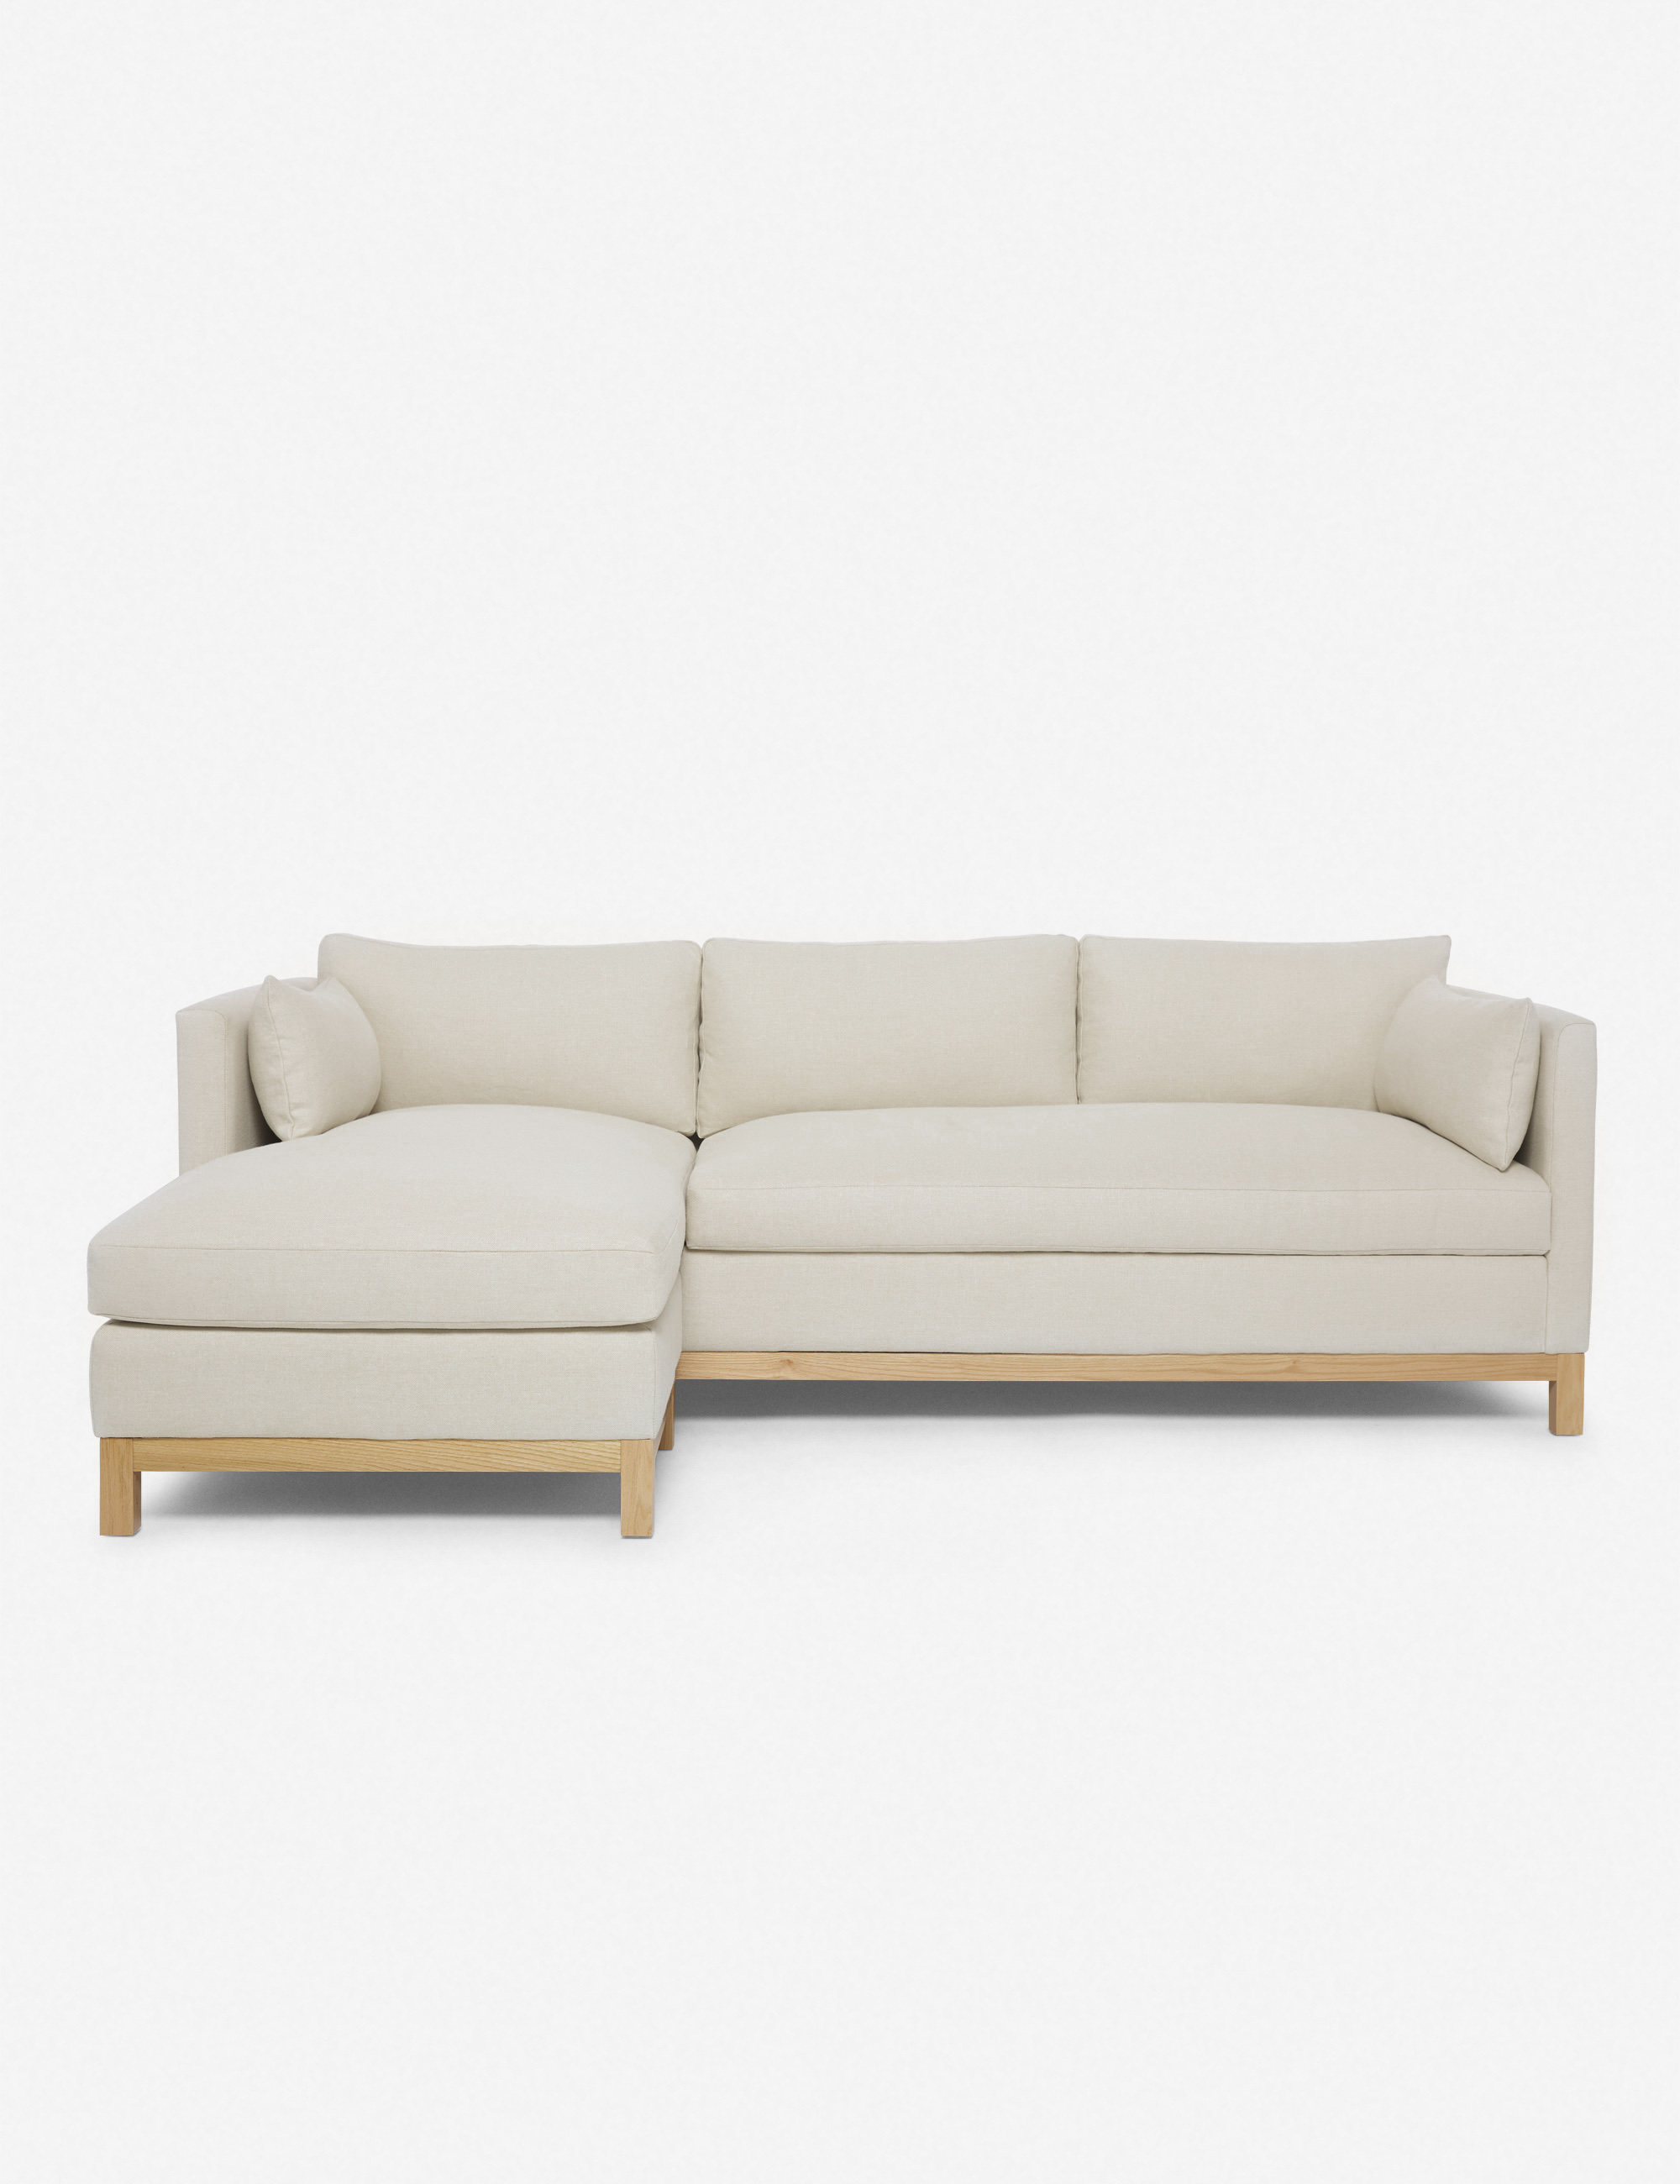 GINNY_MACDONALD_Hollingworth-Sectional-LAF-Linen-Natural